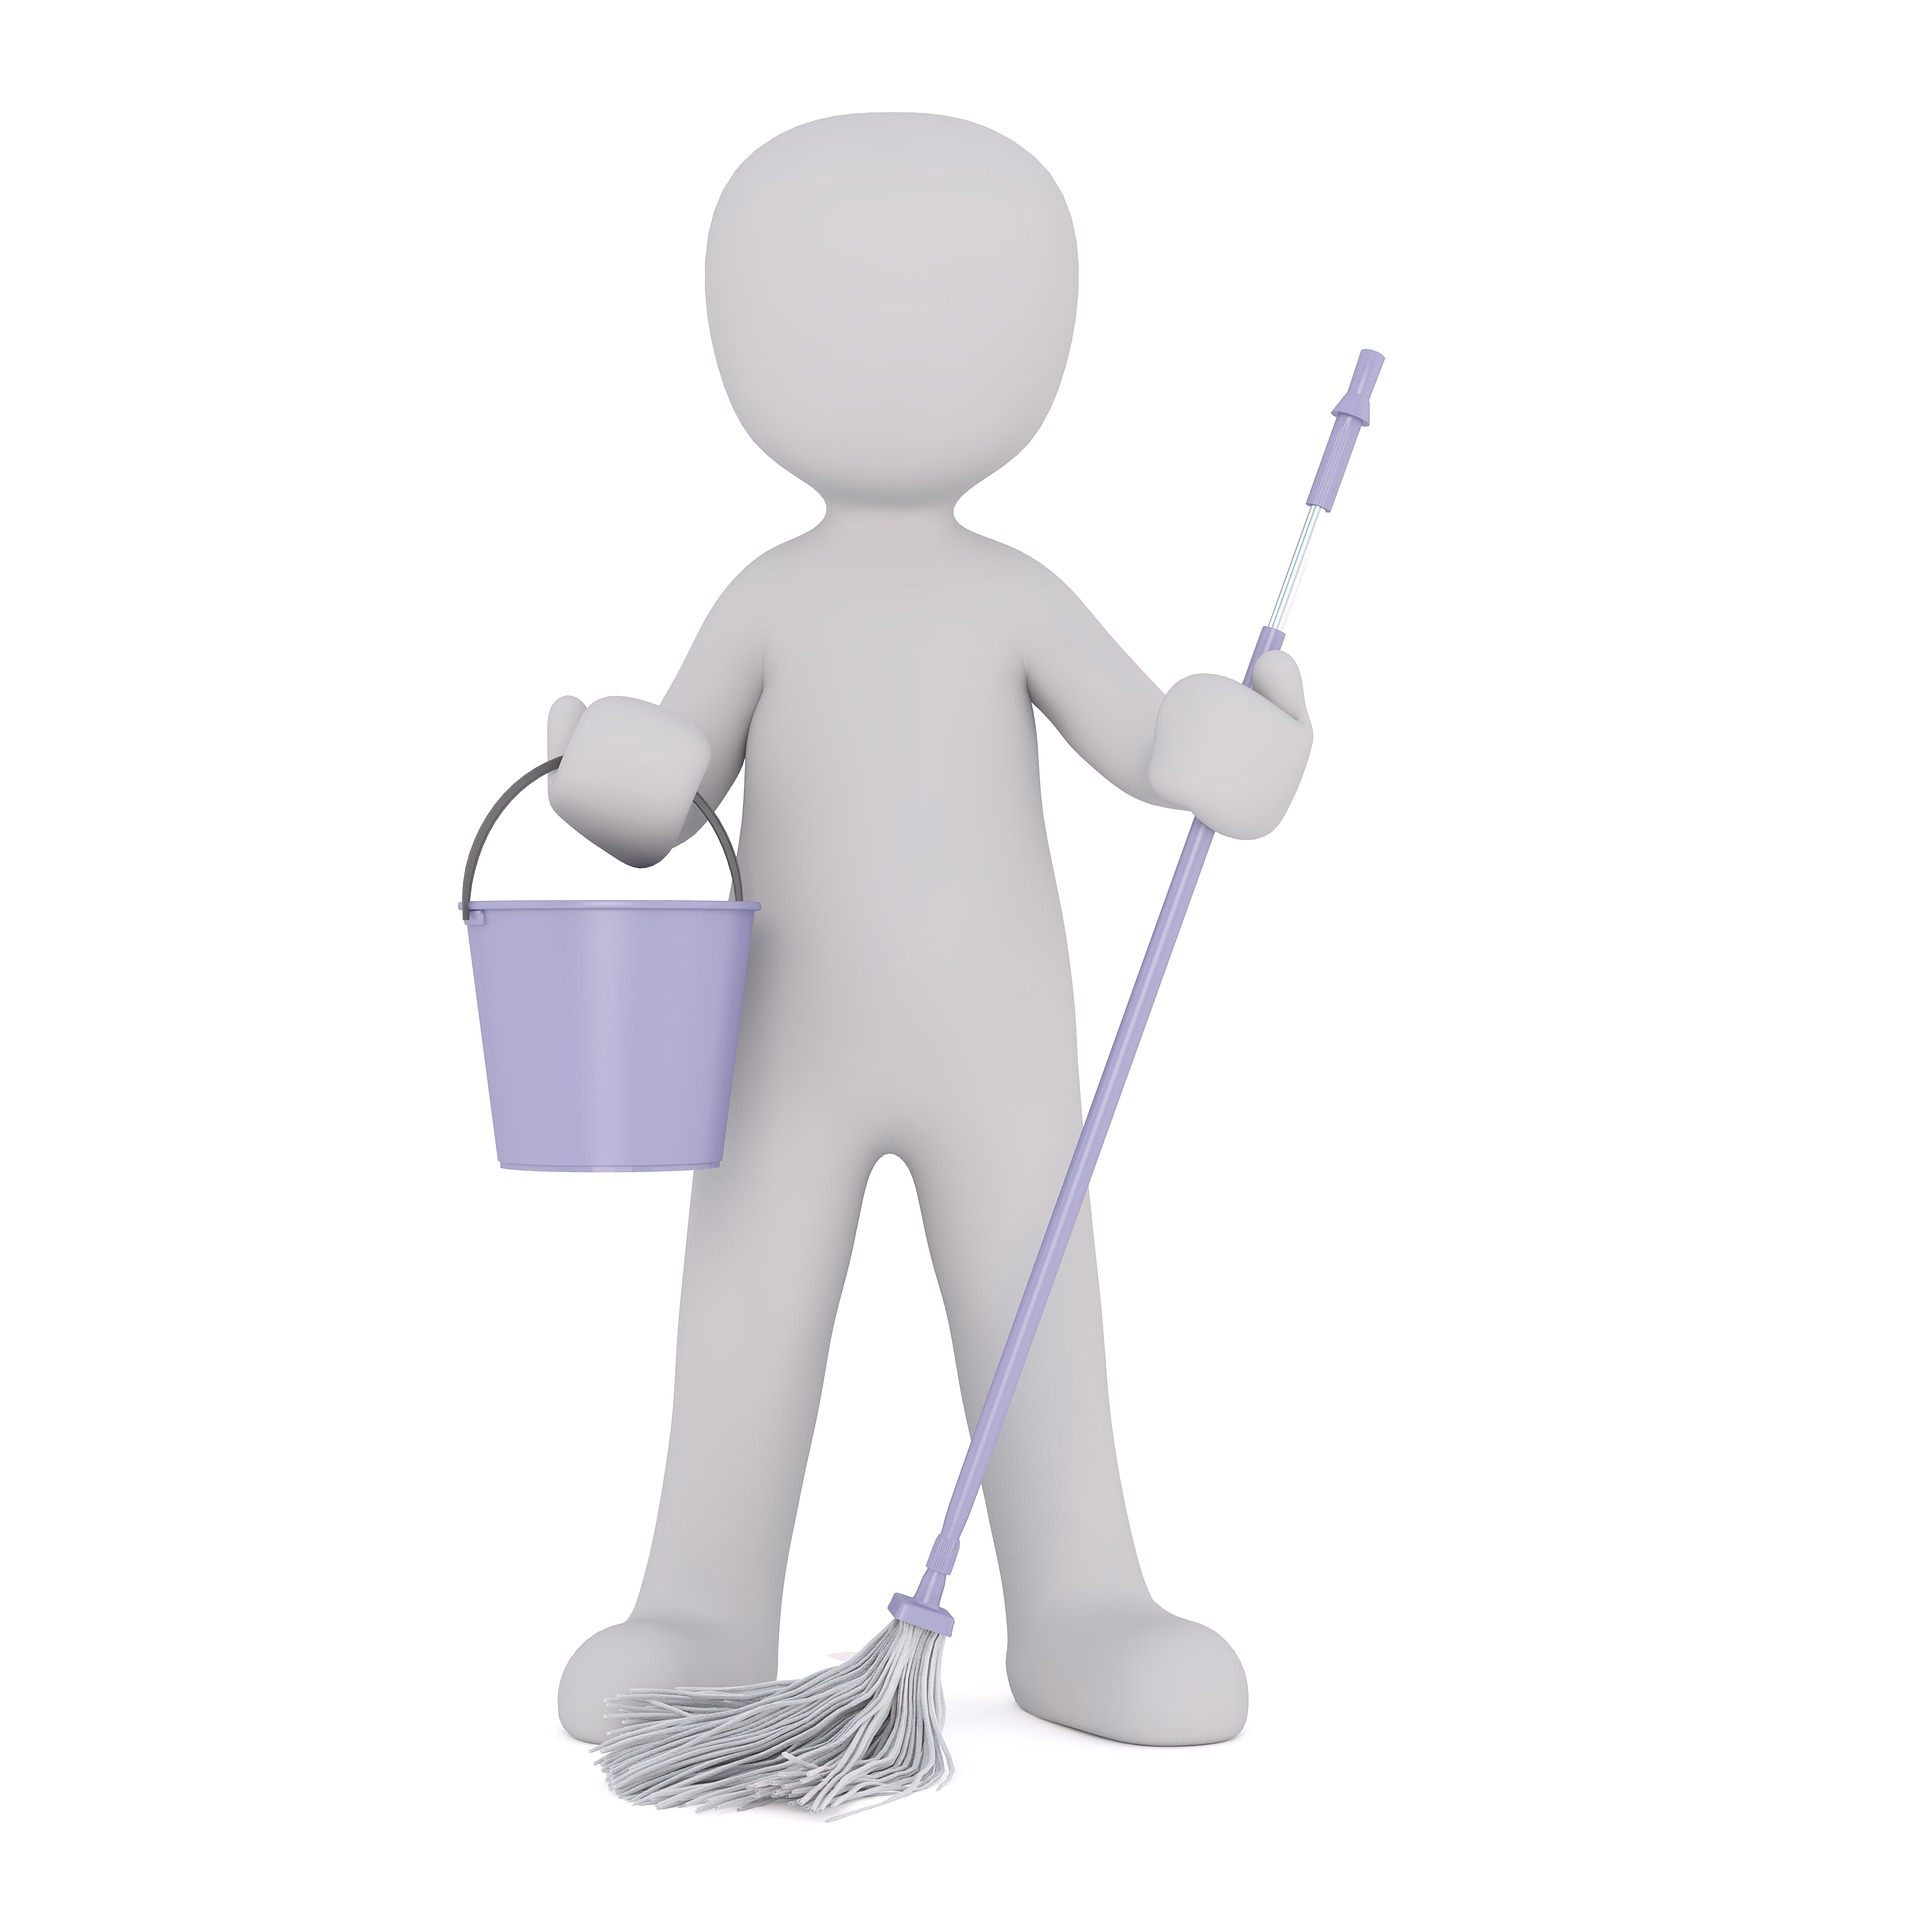 cleaning-woman-1816361_1920